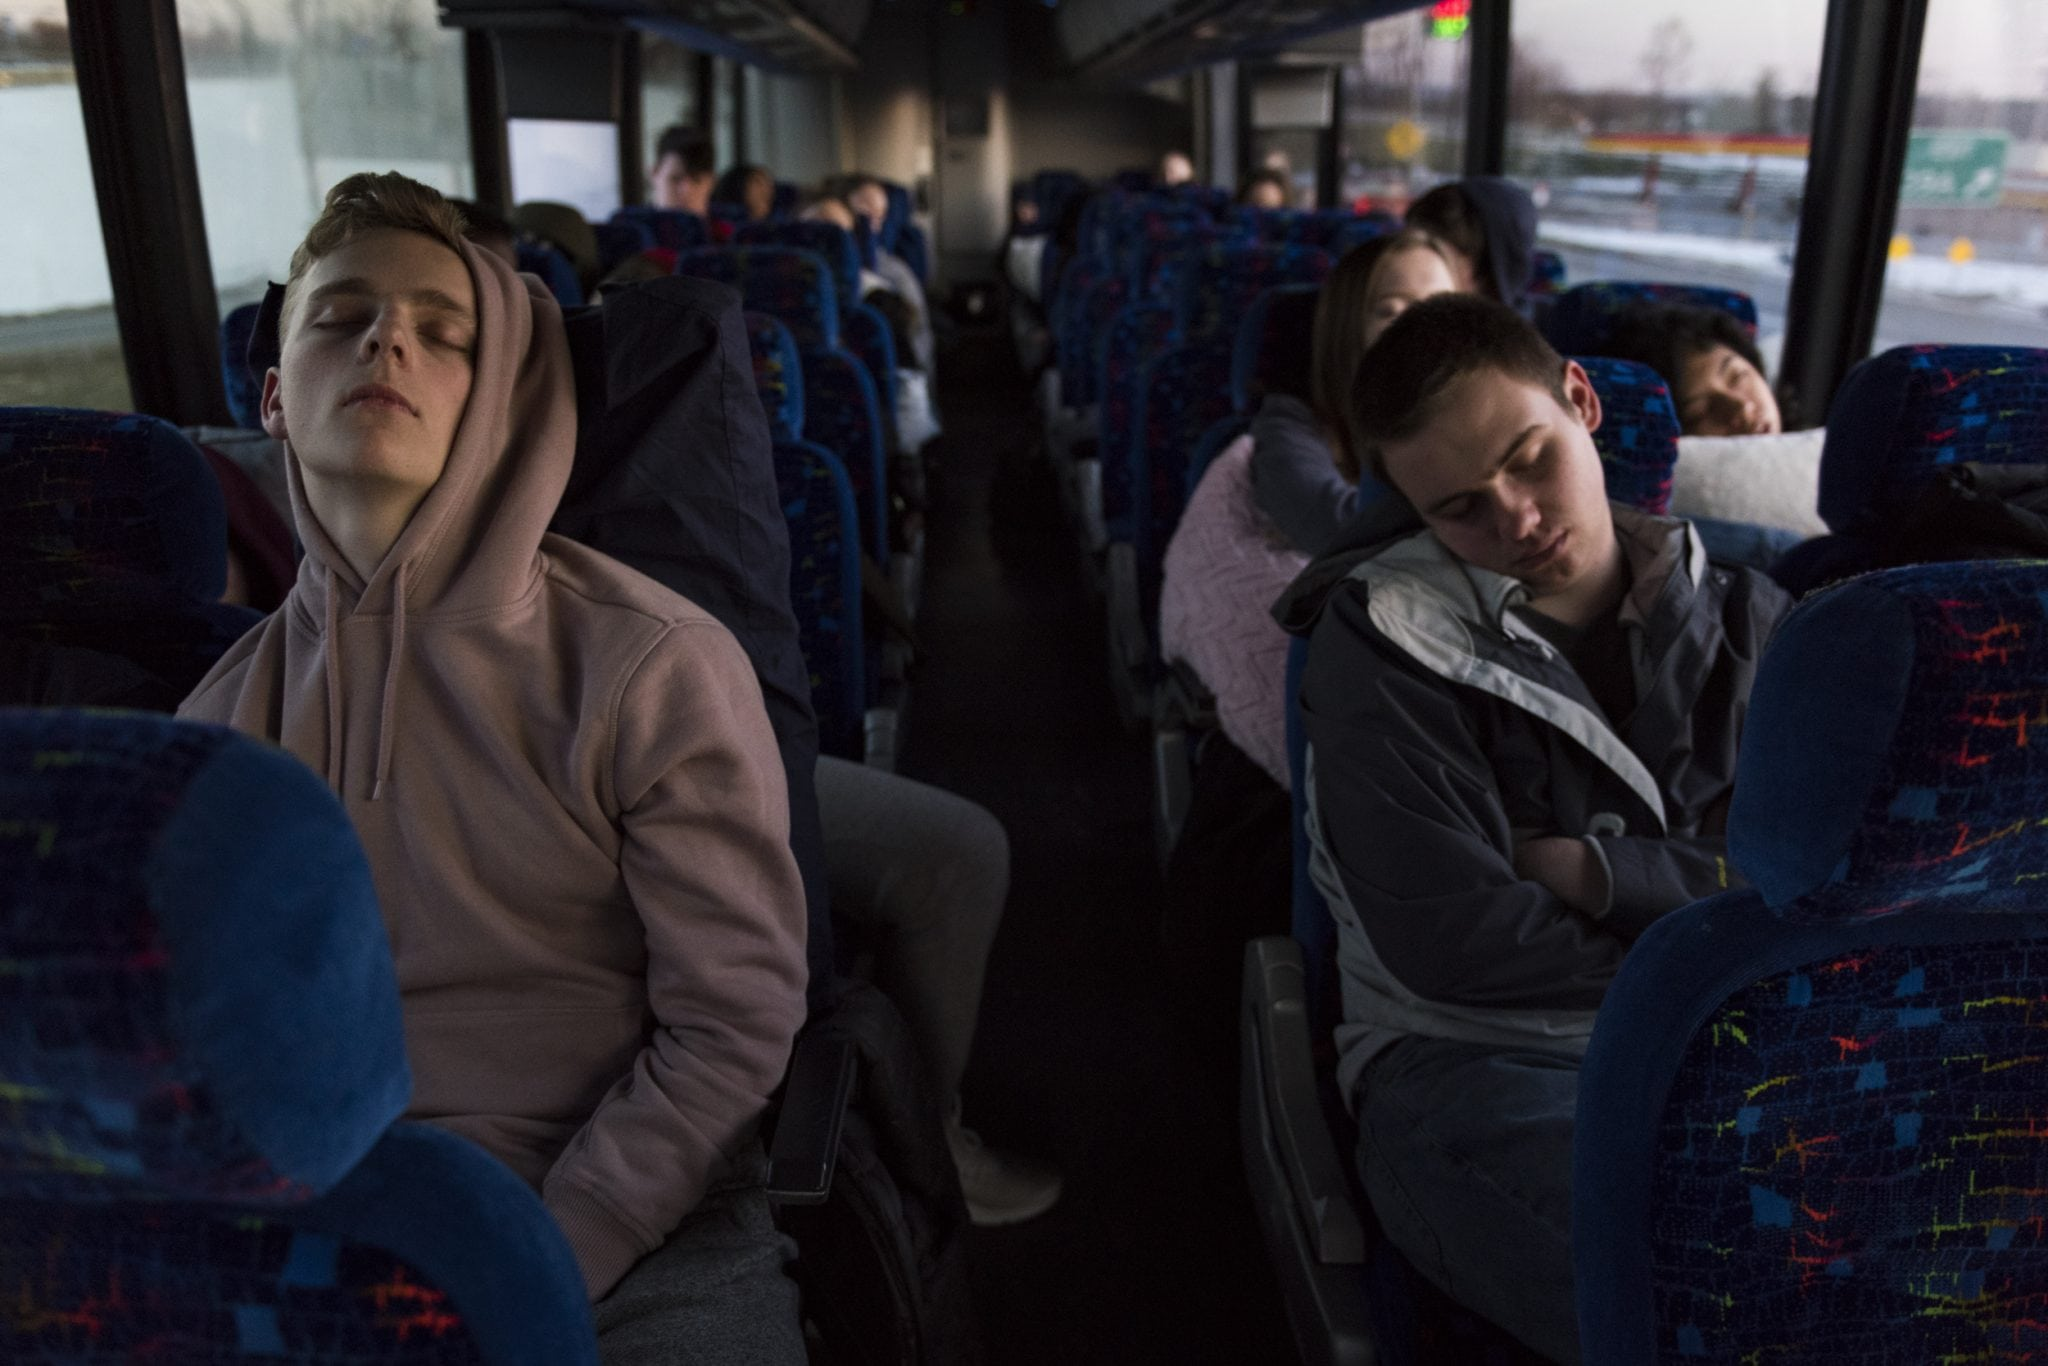 Syracuse University students take a quick nap on the final stretch of the trip on their way to Washington DC for the March for Our Lives rally.